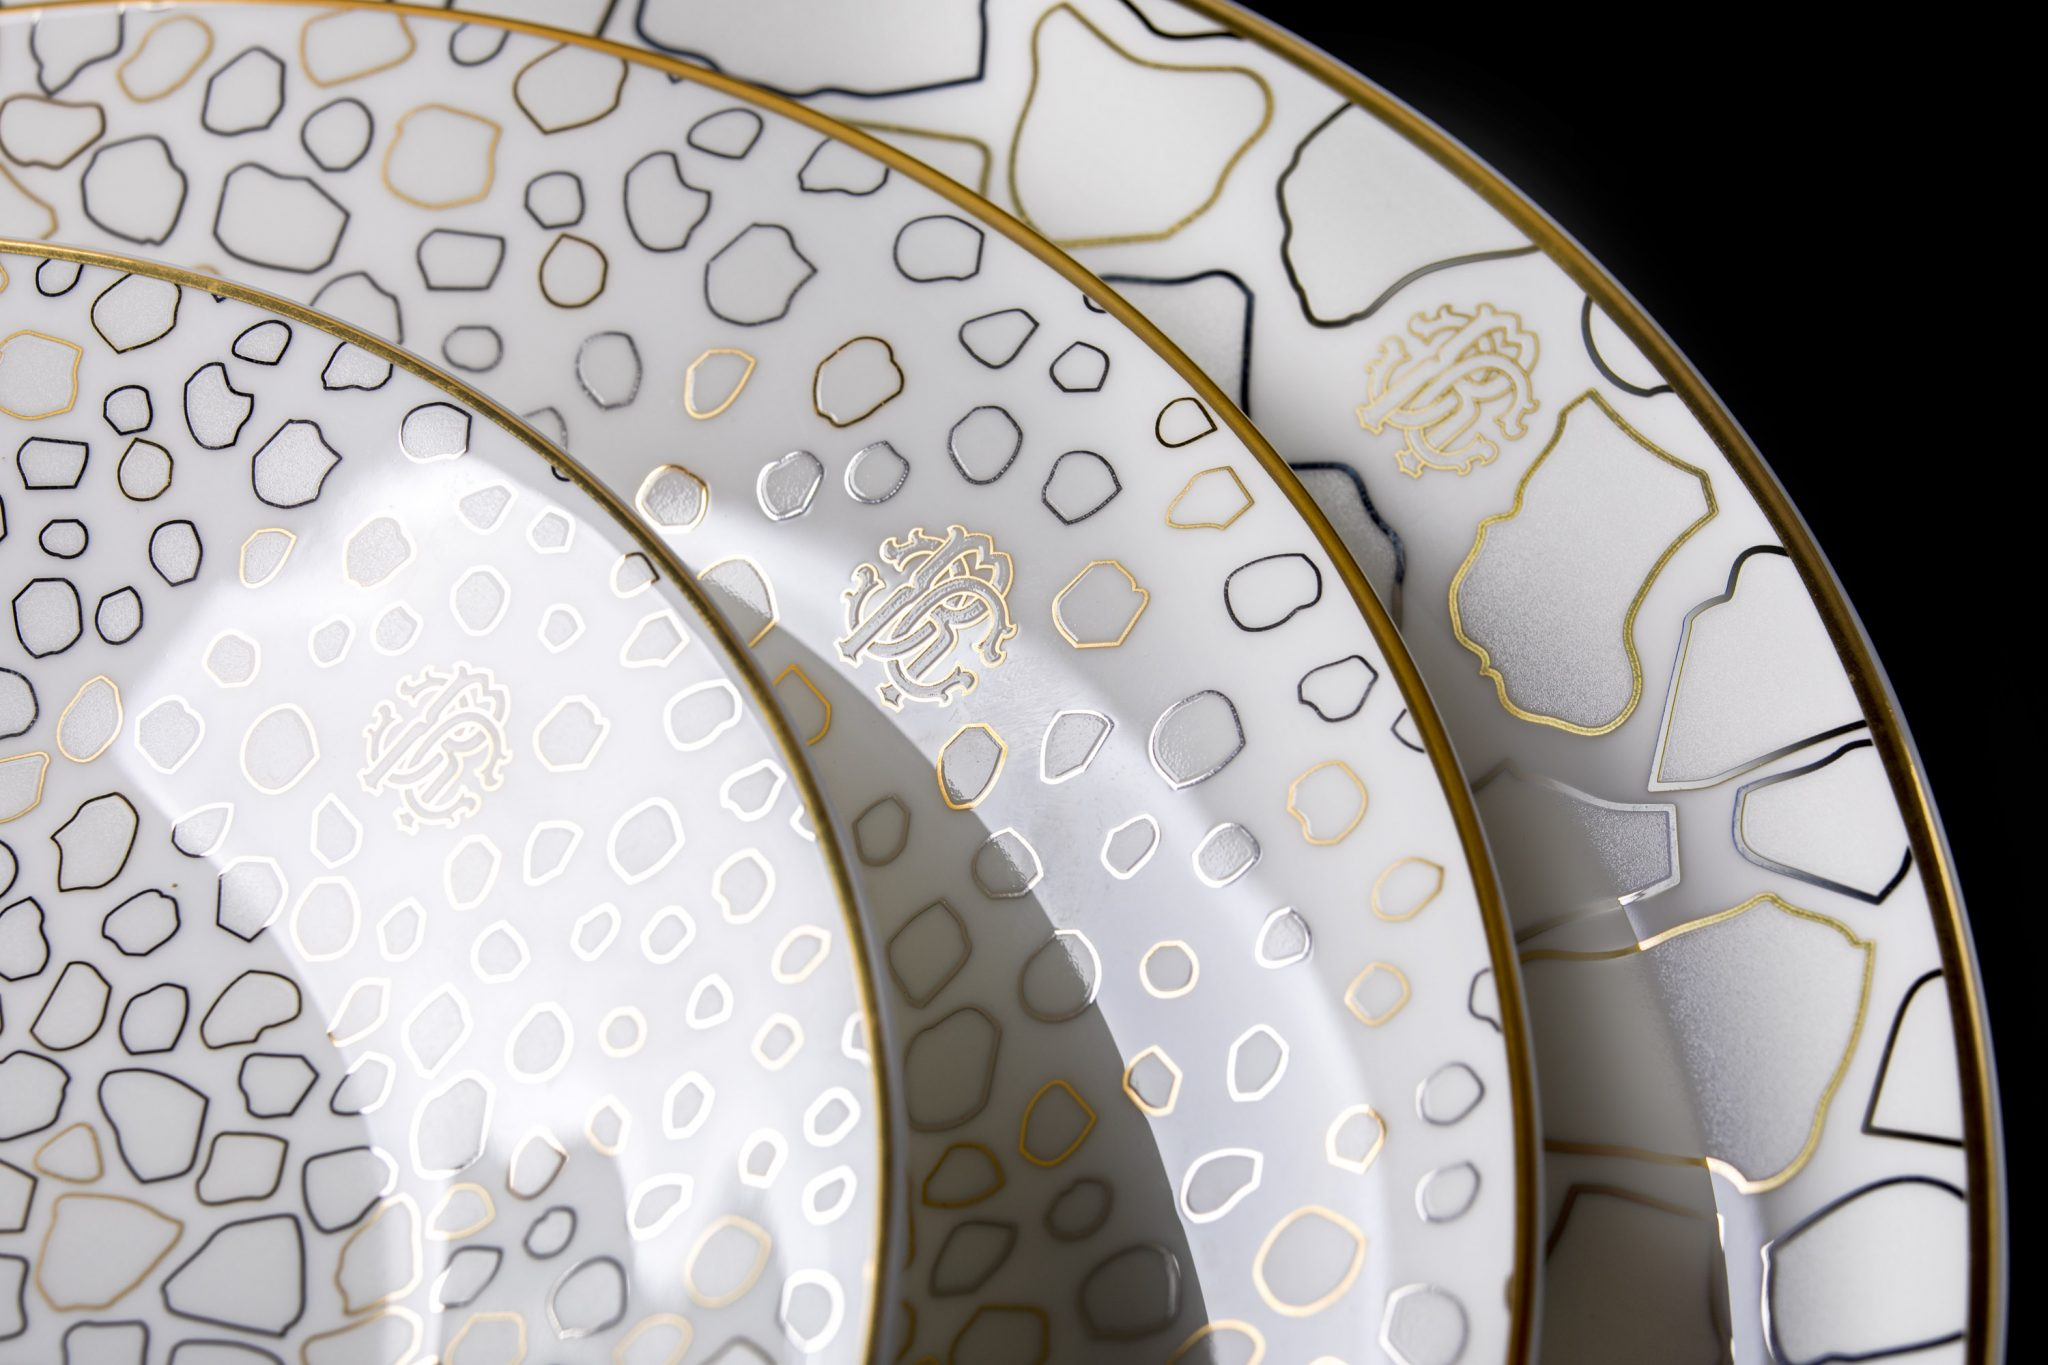 Giraffa Tableware Collection by Roberto Cavalli Home